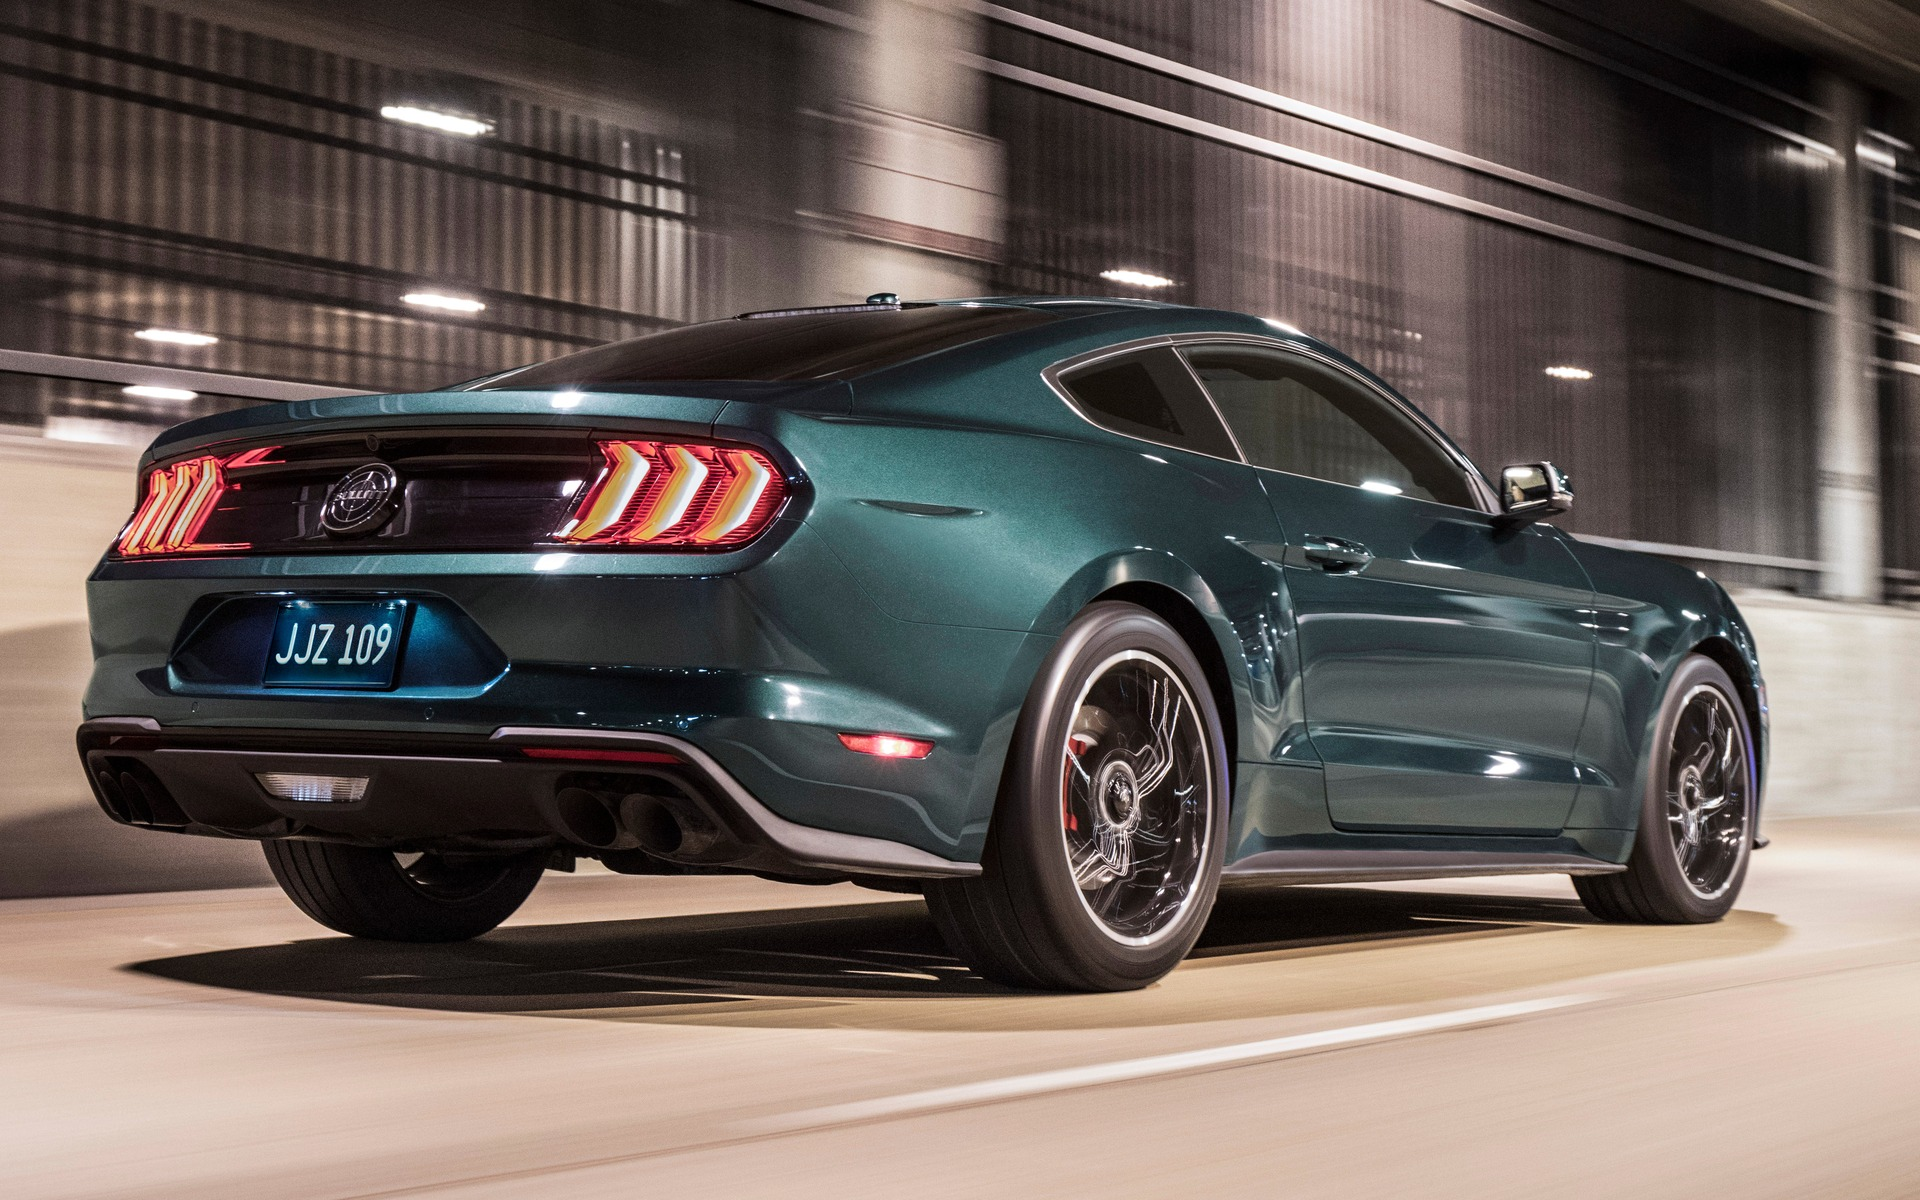 2019 Ford Mustang >> Photos Ford Mustang 2019 - 2/7 - Guide Auto